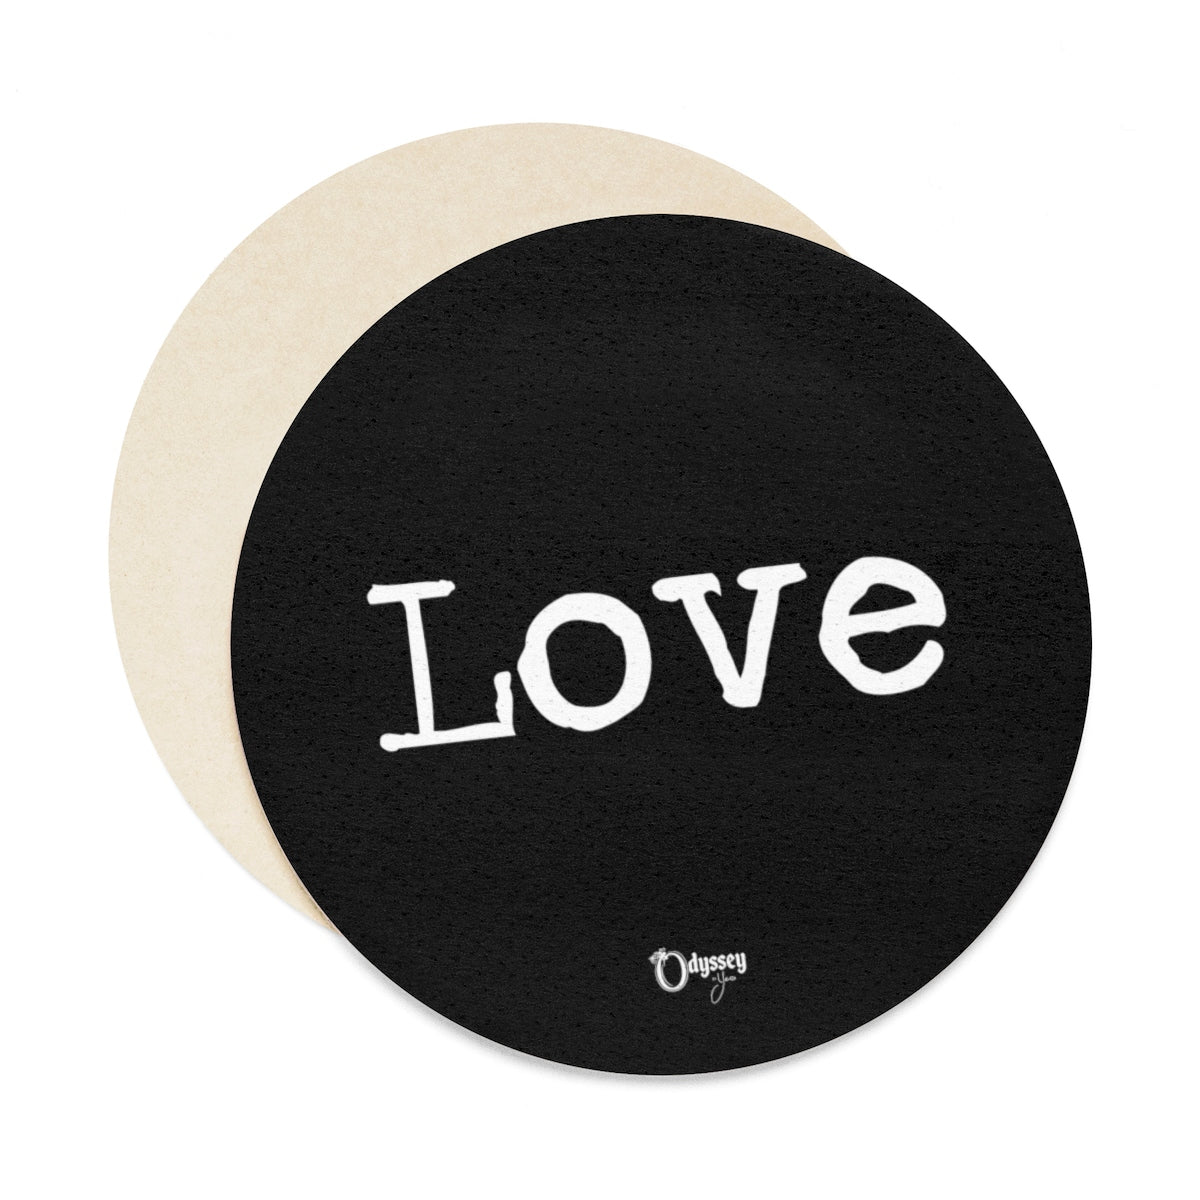 Odyssey Love Paper Coaster Set - 6pcs - Home Decor - Odyssey By Yendi